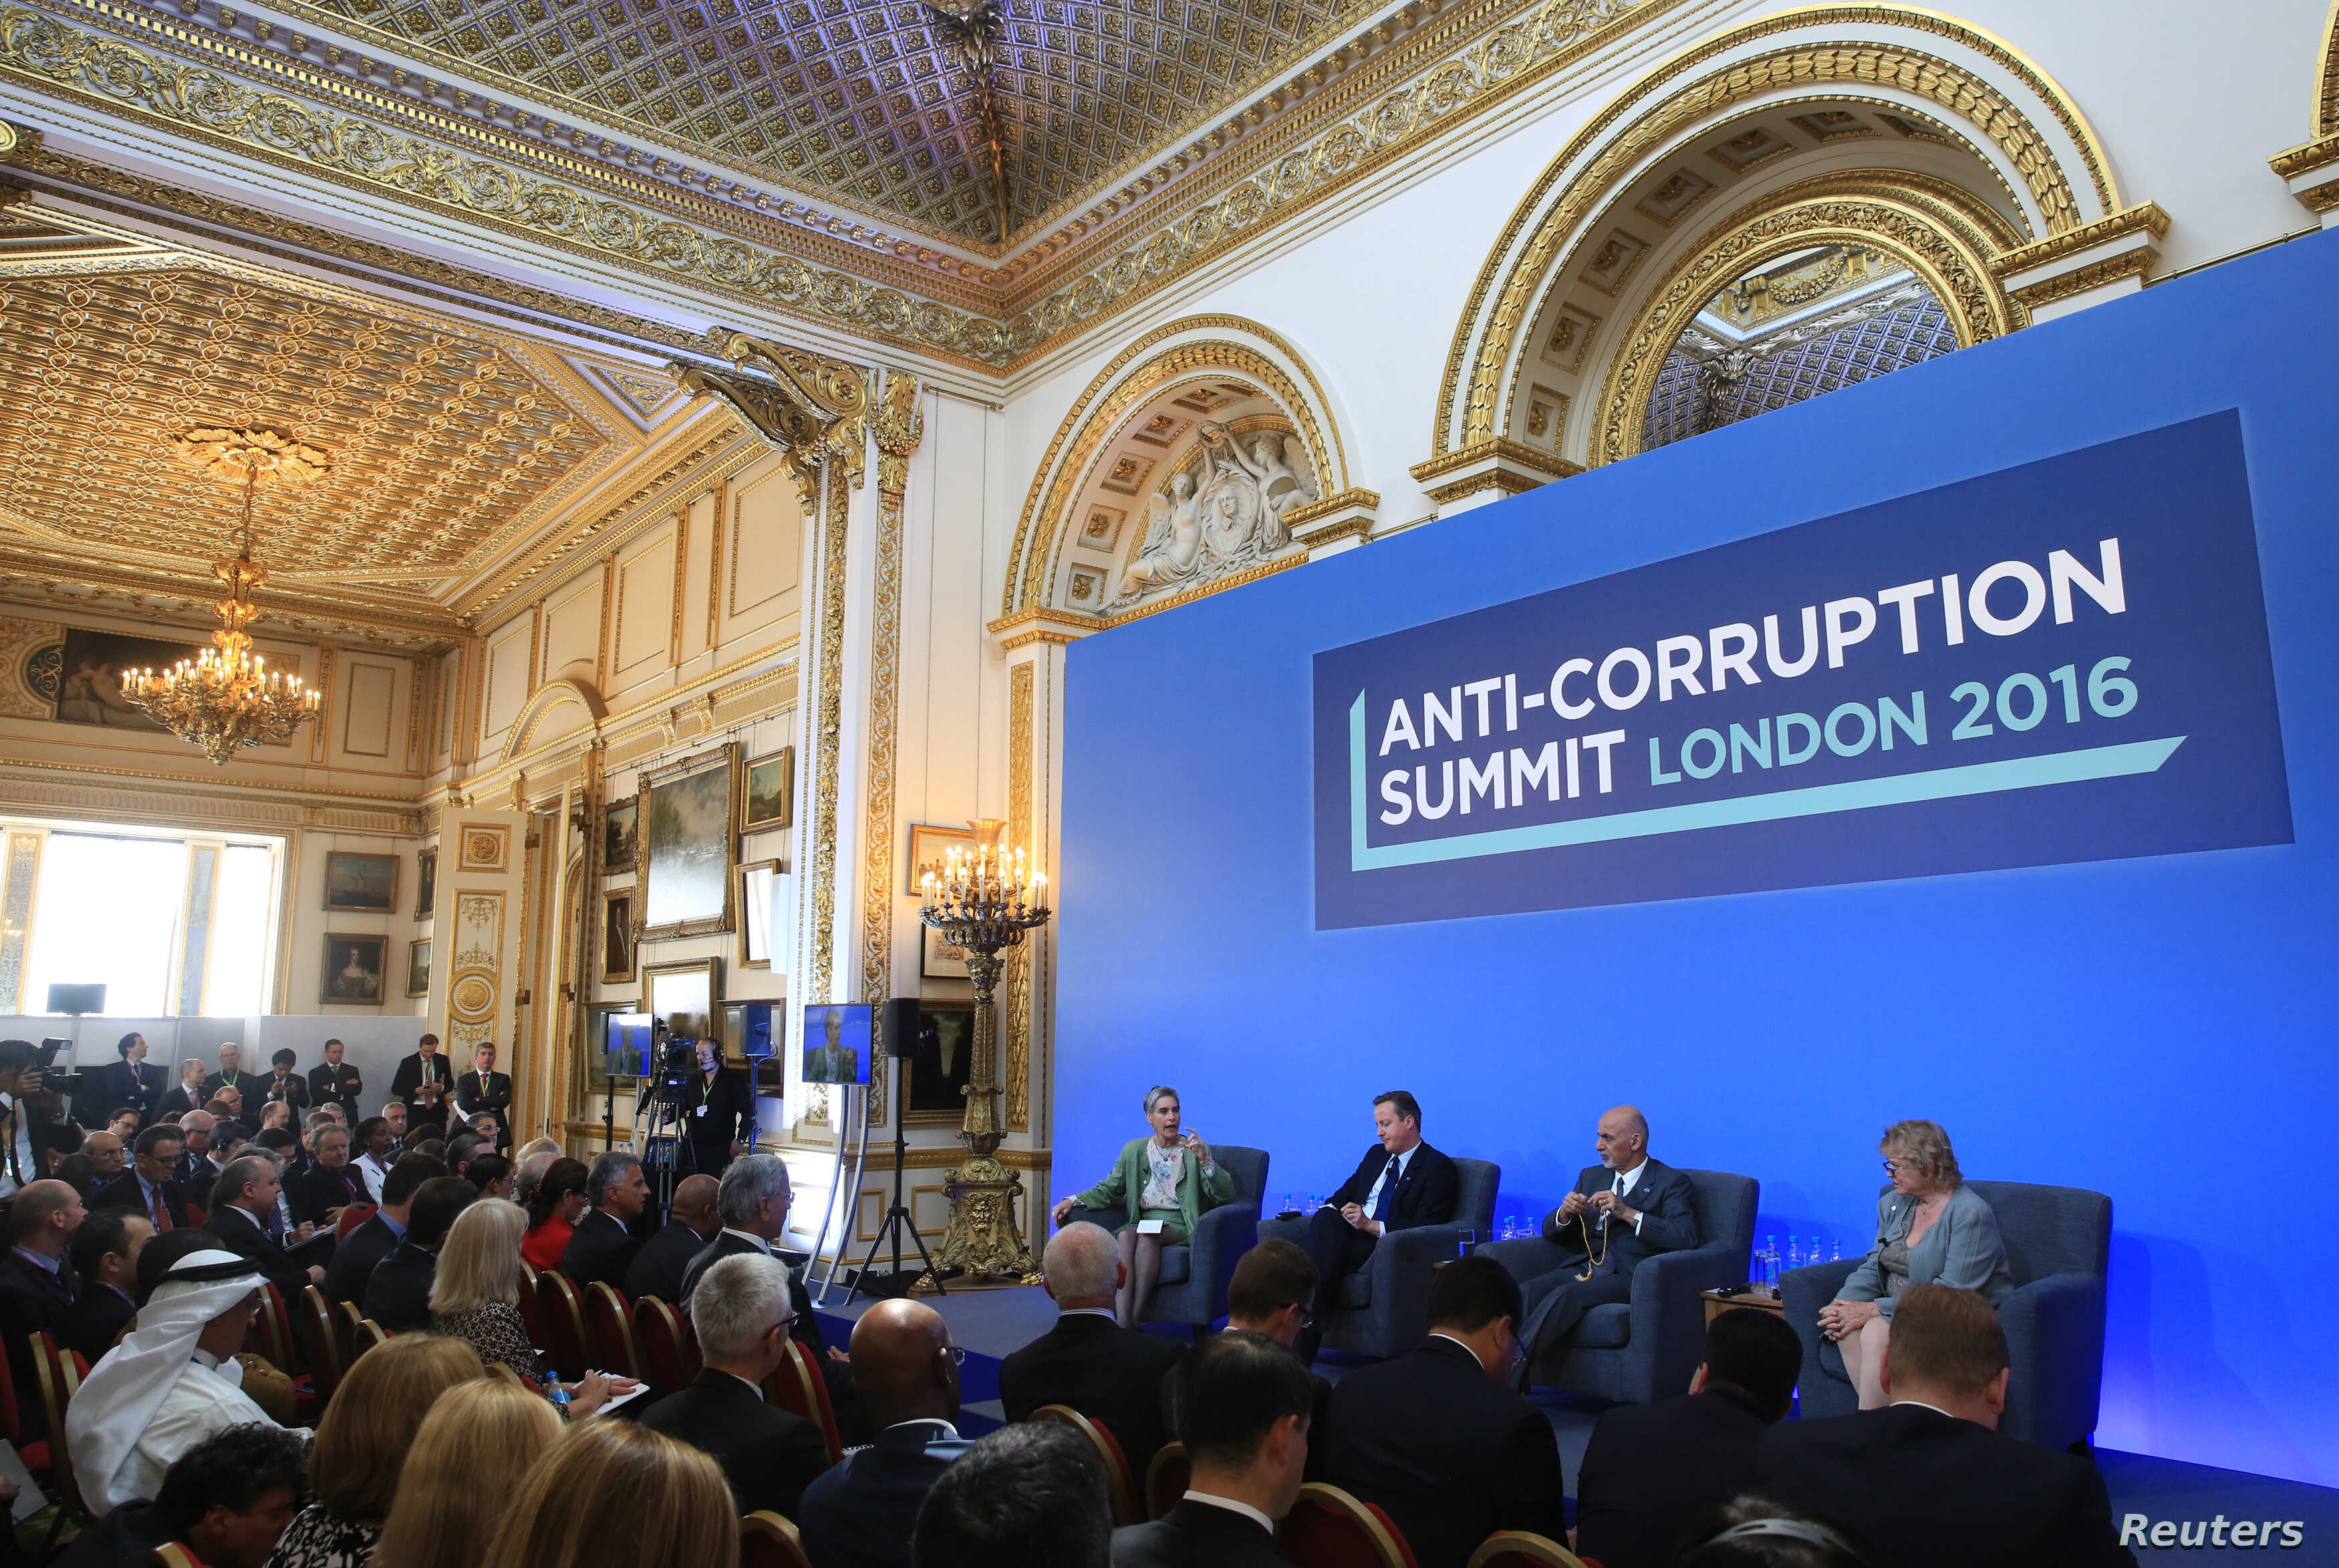 (L-R) Sarah Chayes from the Carnegie Endownment for International Peace,British Prime Minister Cameron, Afghan President Ghani and French magistrate Eva Jolly share a platform at the international anti-corruption summit, London, Britain, May 12, 2016...